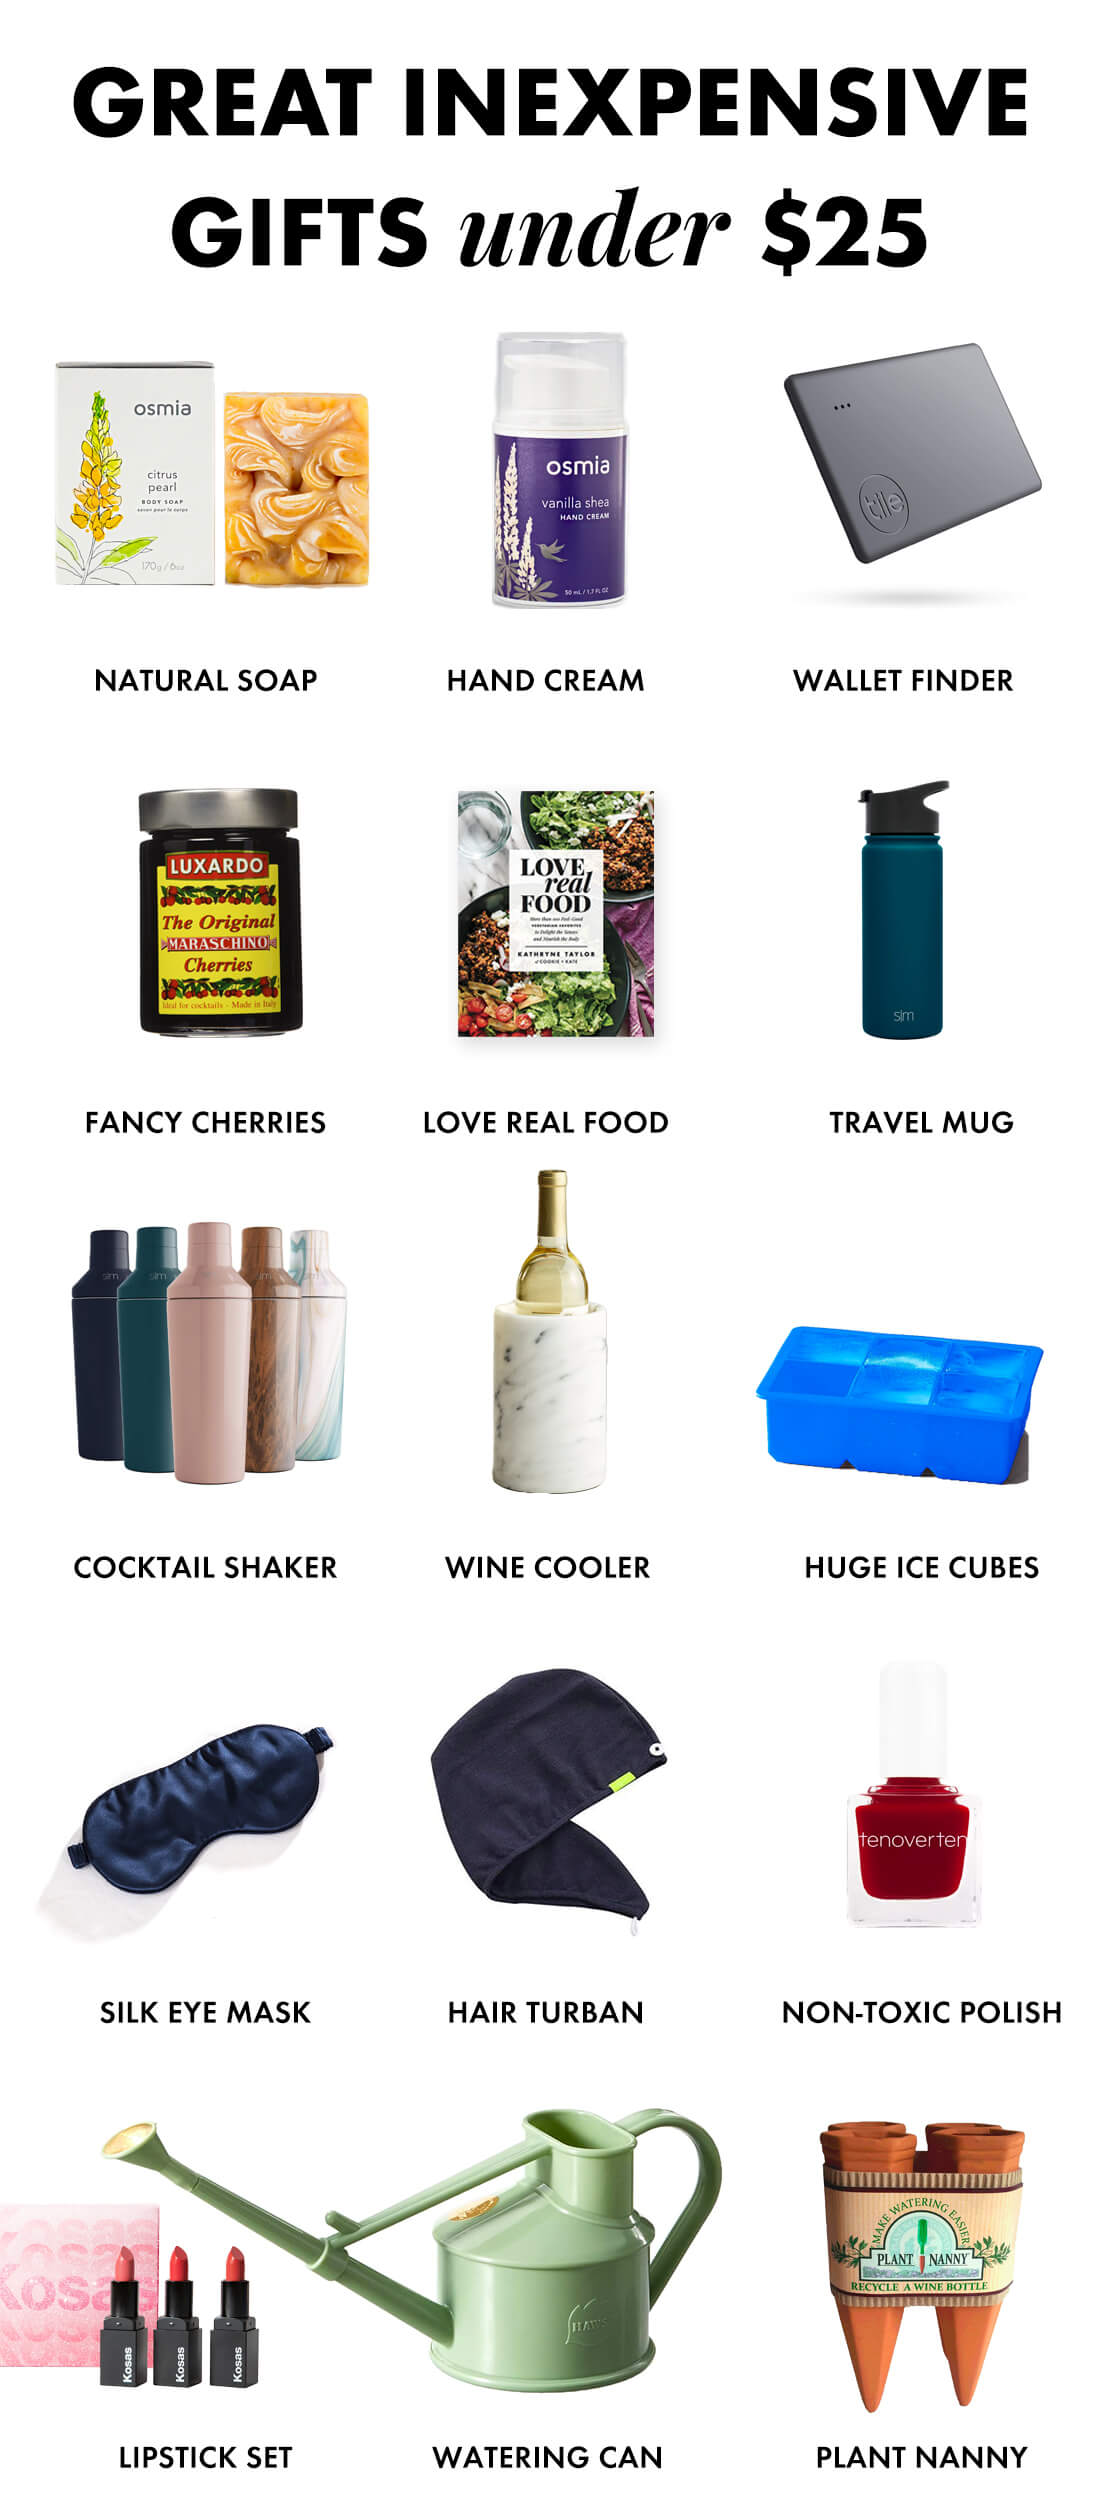 inexpensive gifts under $25 for the holidays